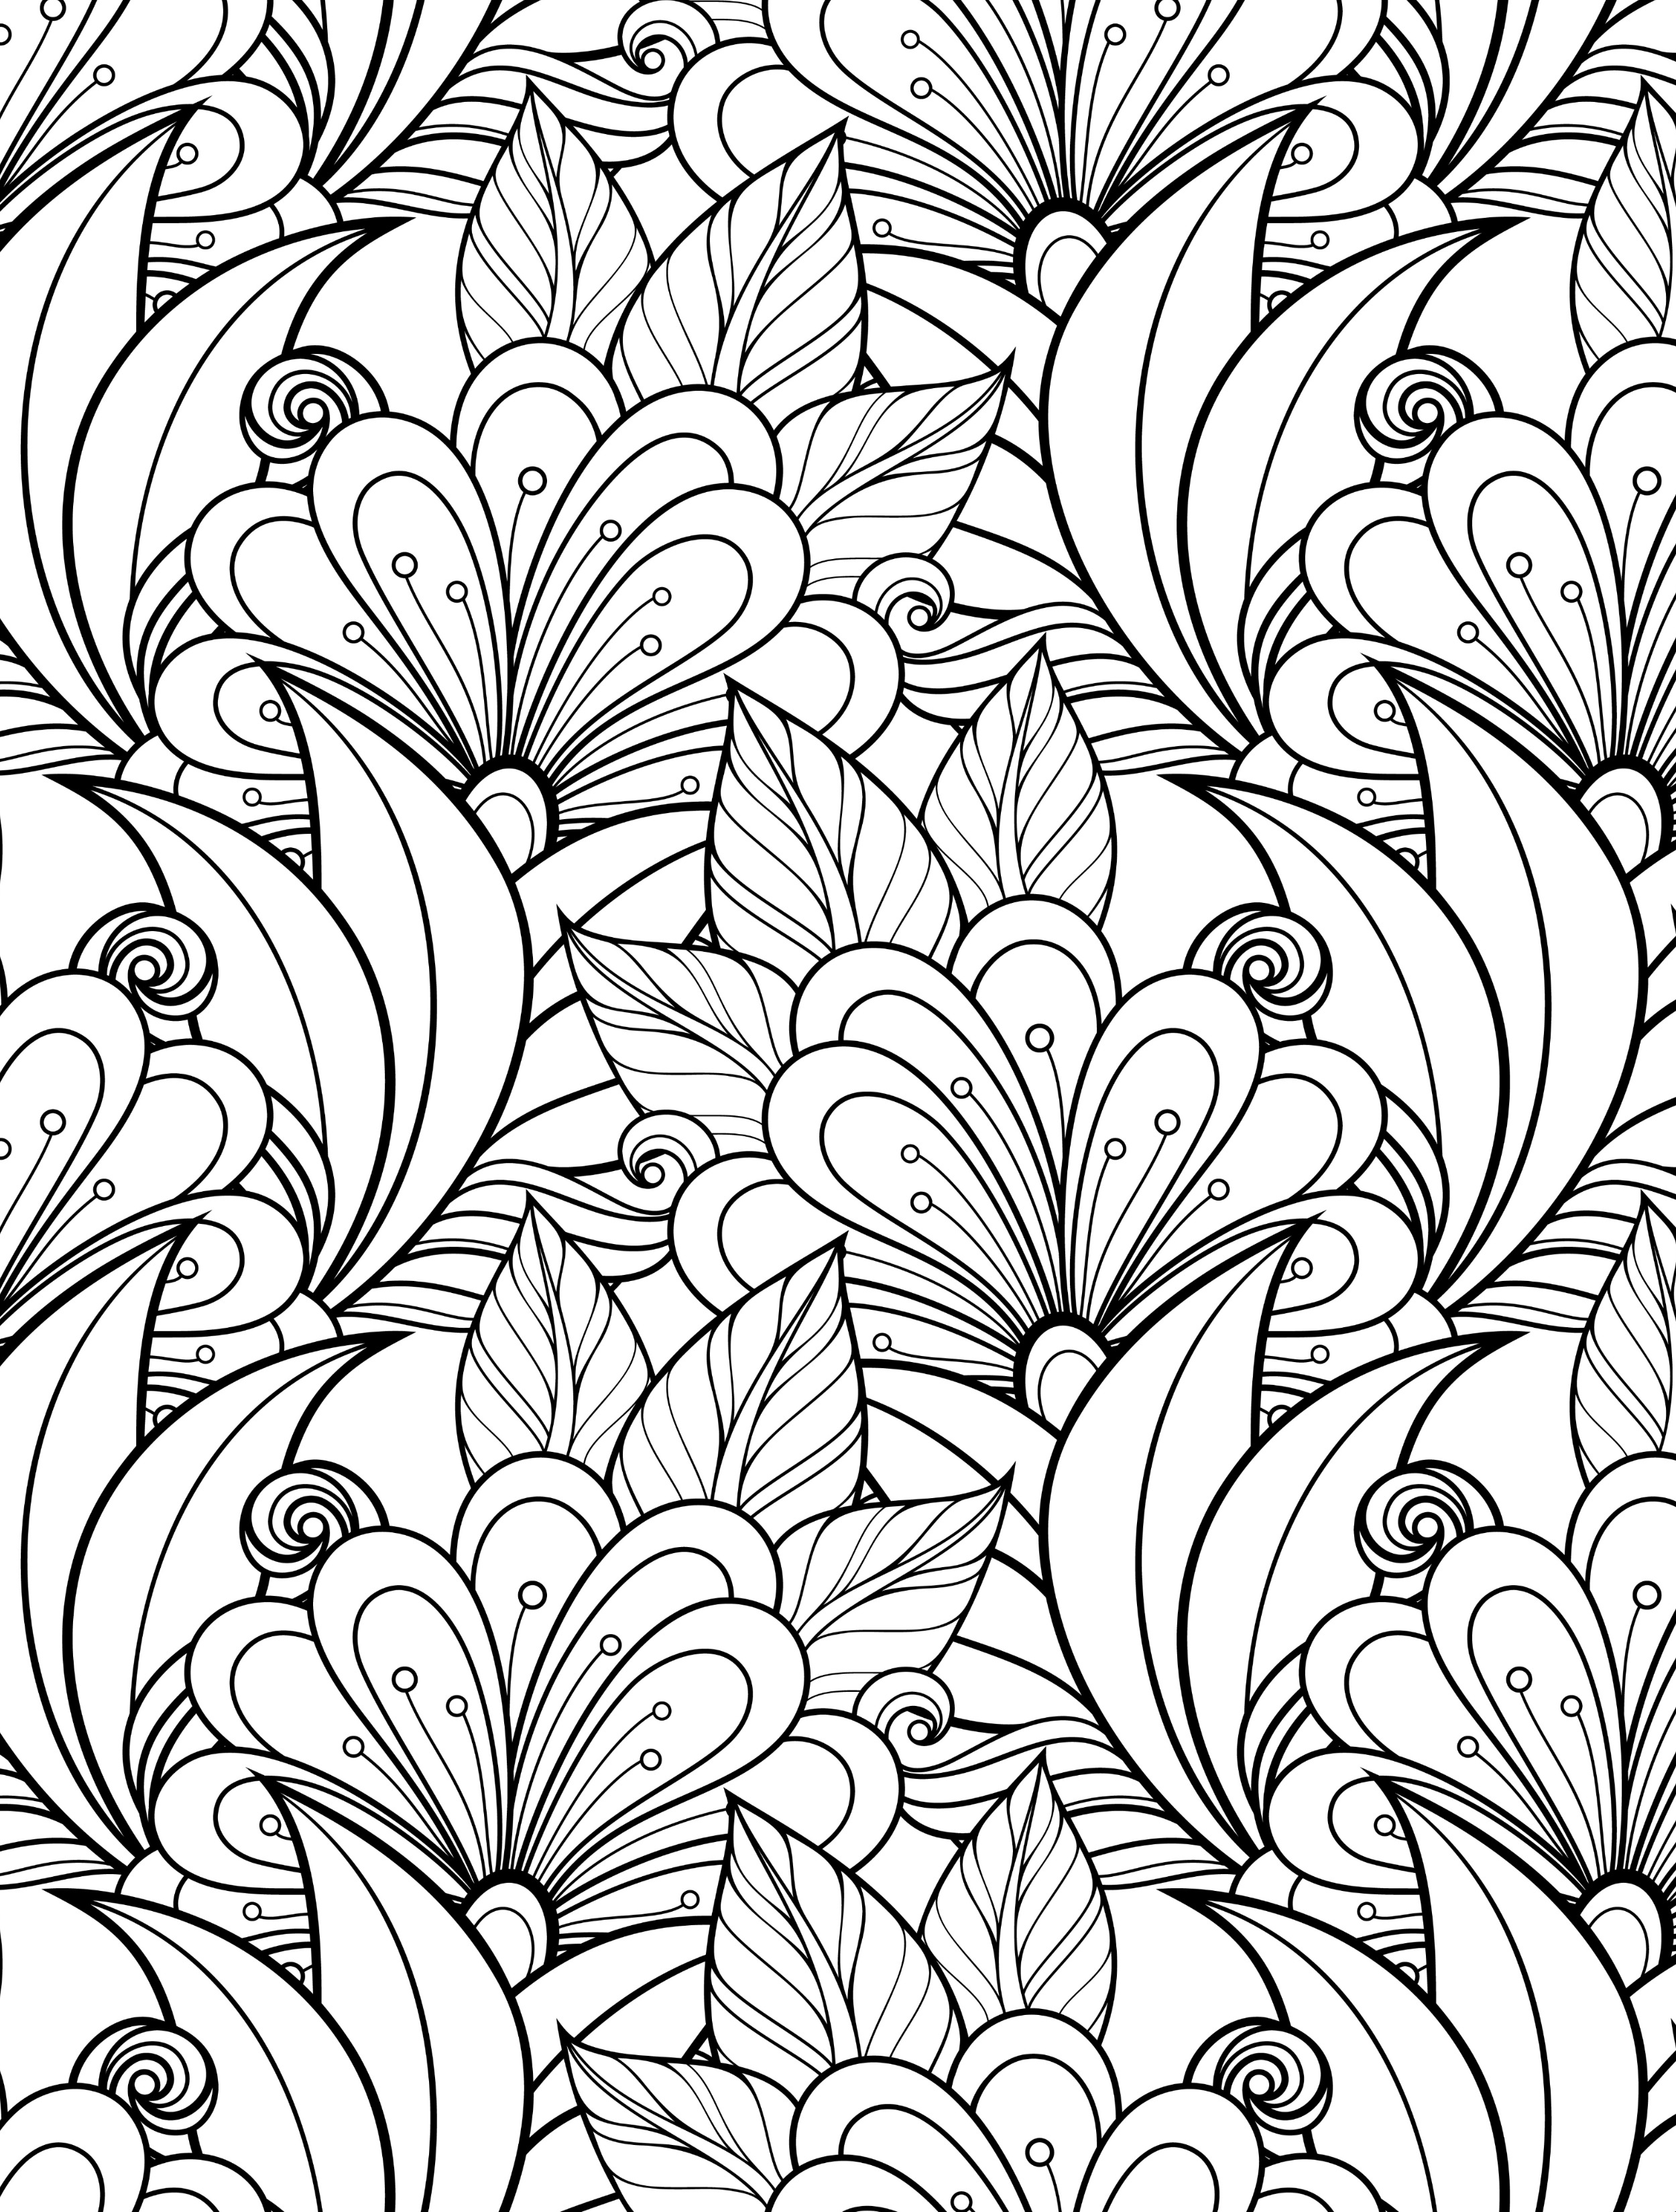 coloring pages for adults printable serendipity adult coloring pages printable pages for coloring printable adults